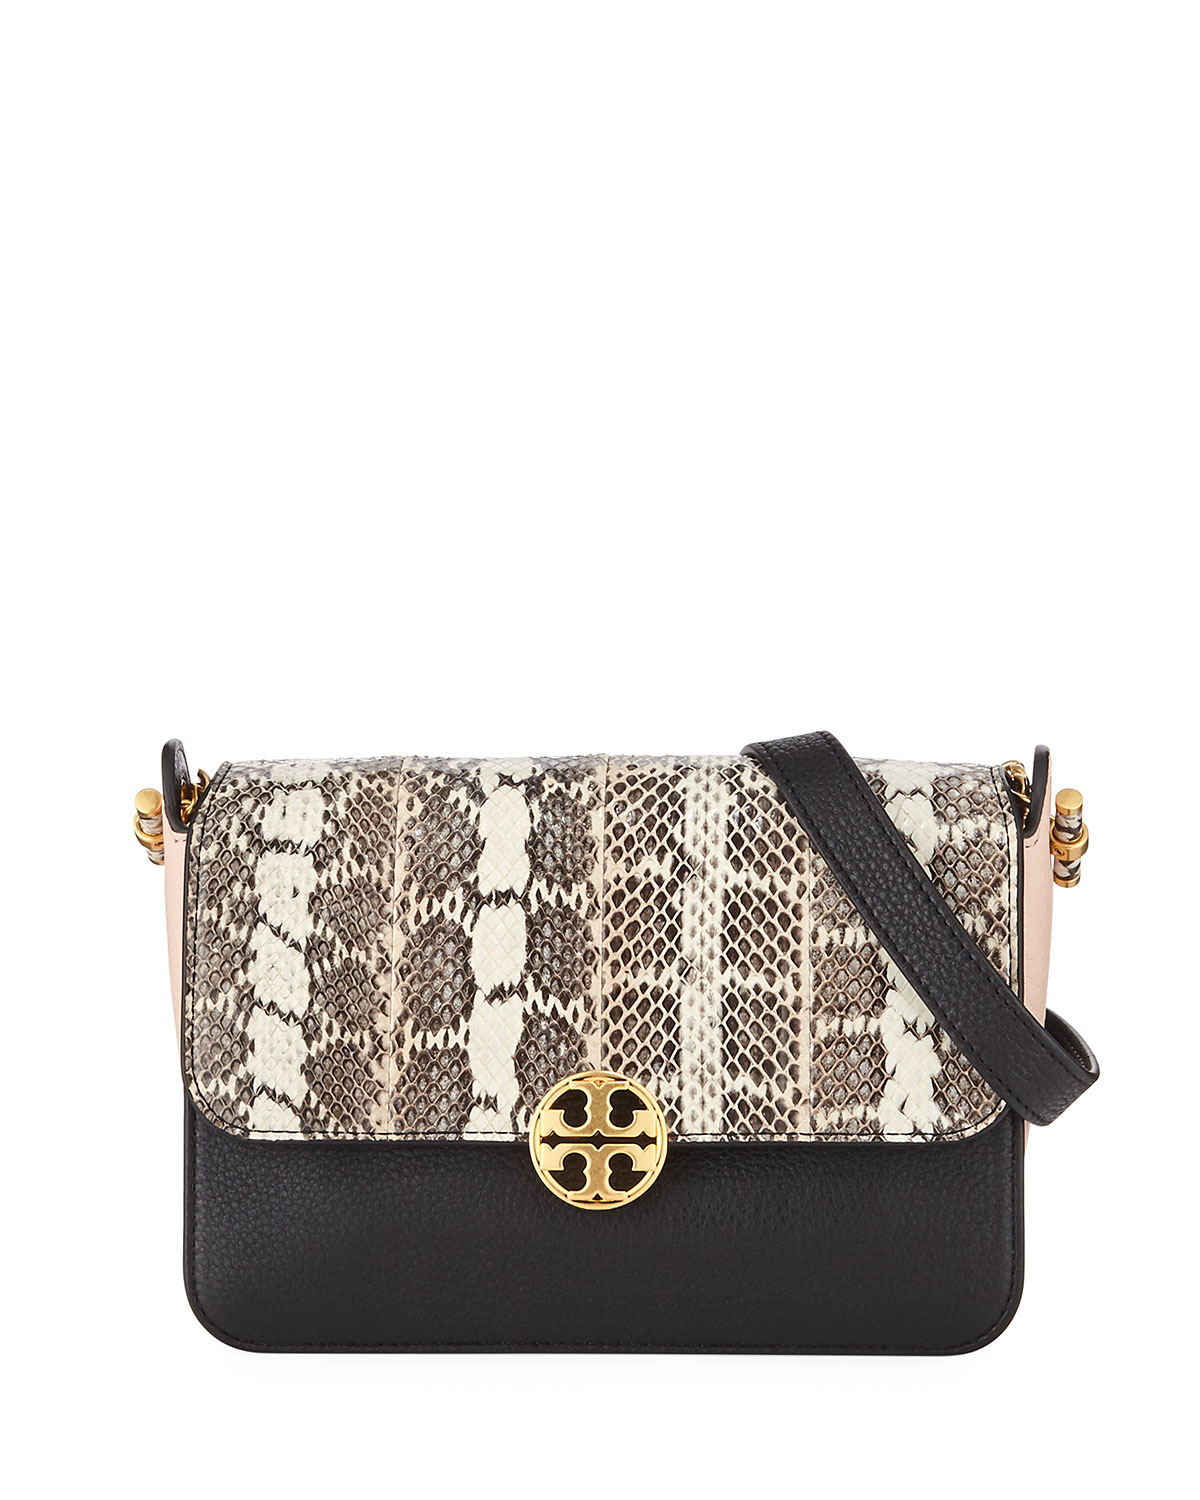 0b8c9376c53a Tory Burch Chelsea Colorblock Snake Crossbody Bag